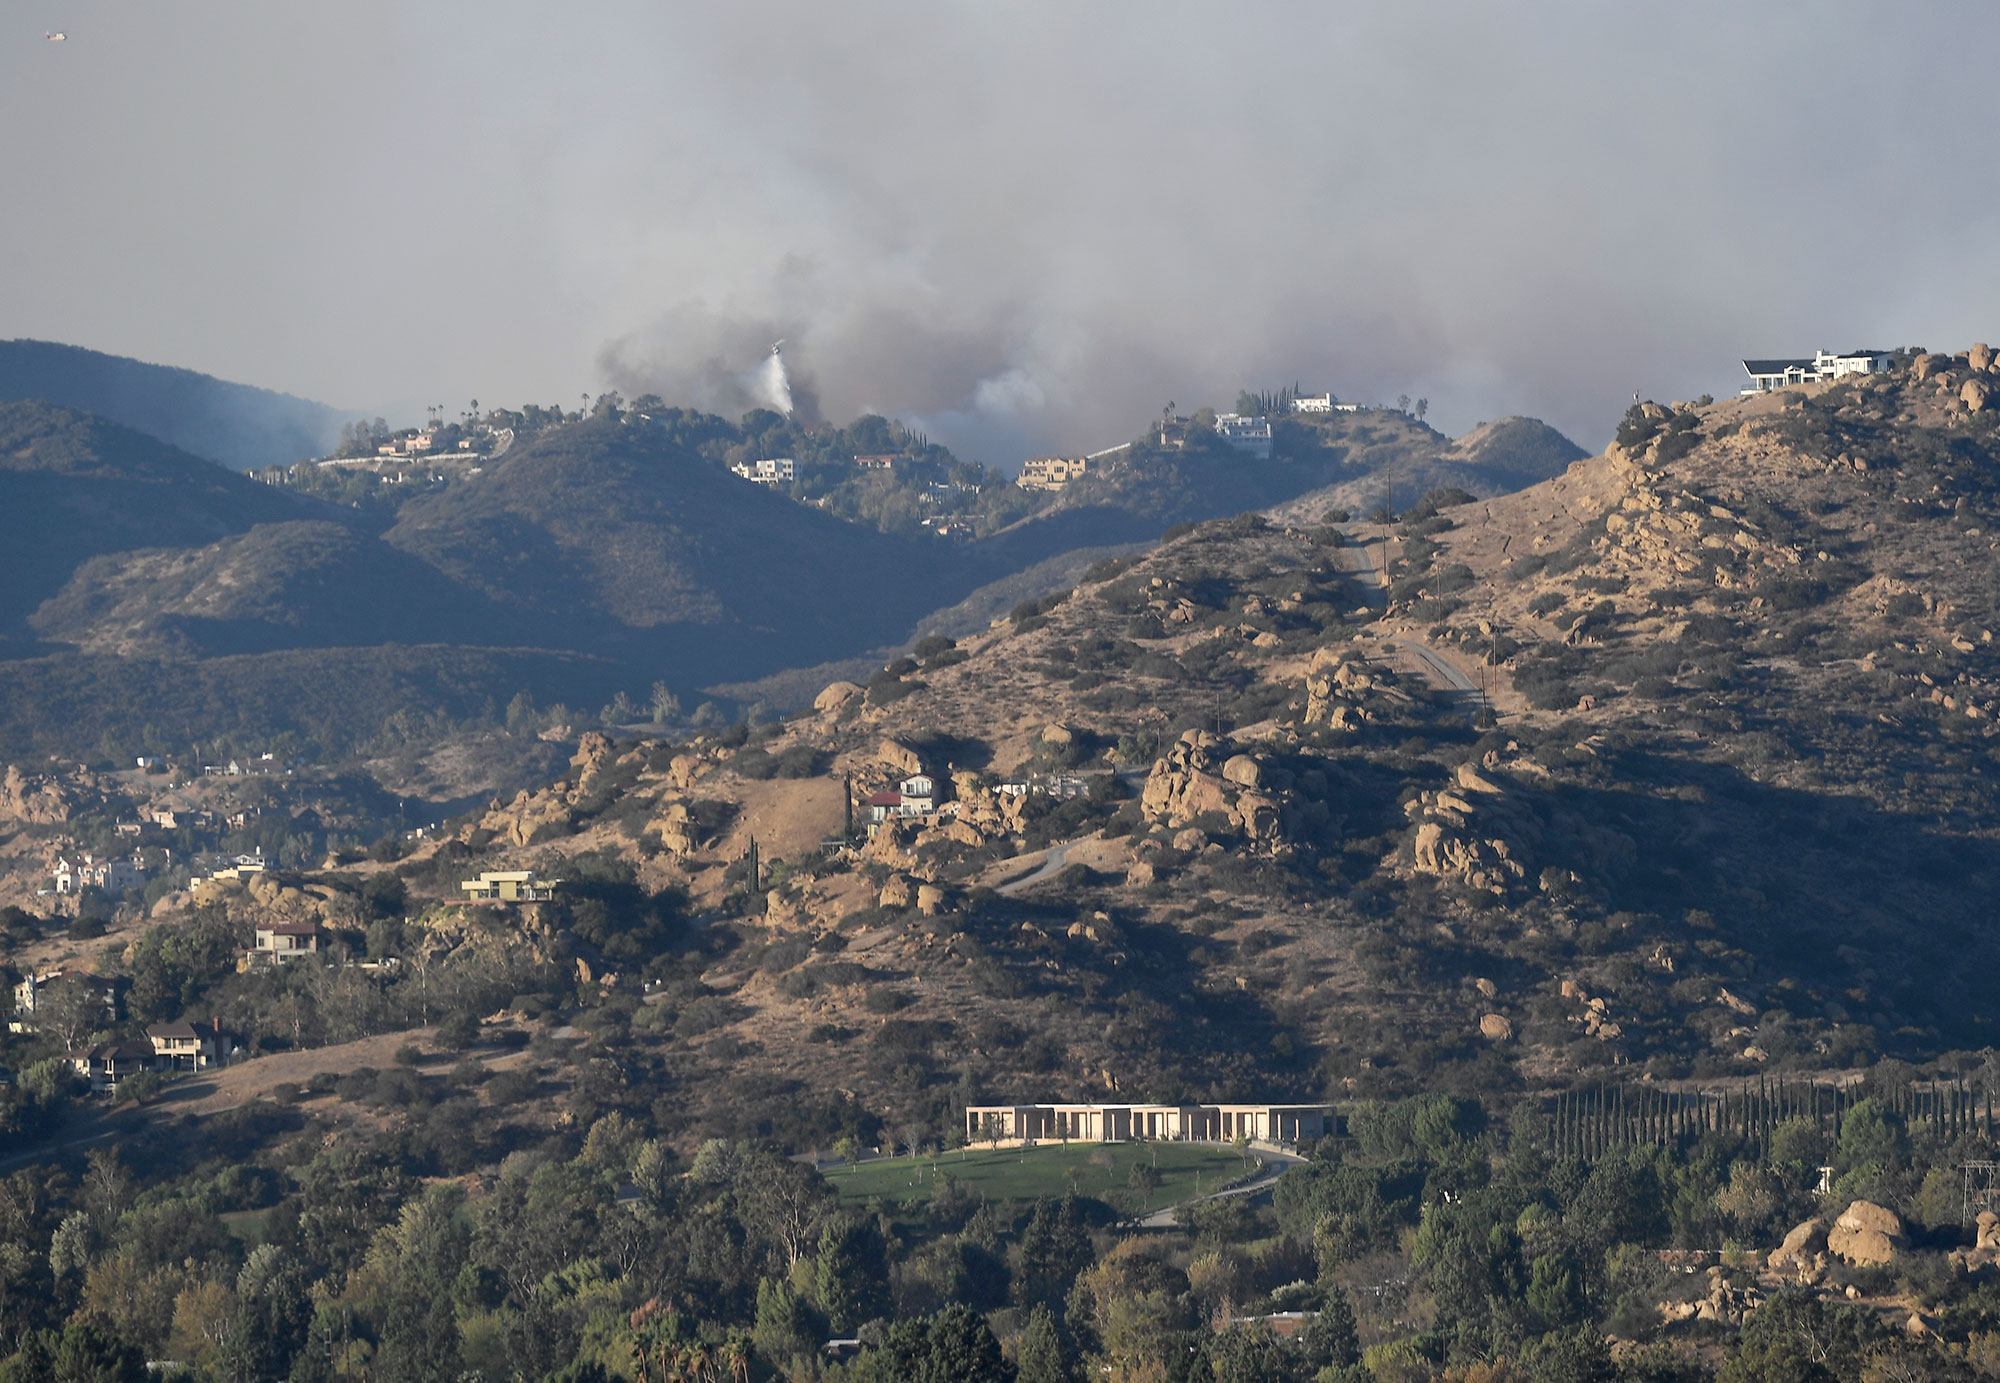 <div class='meta'><div class='origin-logo' data-origin='none'></div><span class='caption-text' data-credit='Kevork Djansezian/Getty Images'>The Woolsey Fire is seen looking towards the Oak Park area on November 9, 2018 in Porter Ranch, California.</span></div>